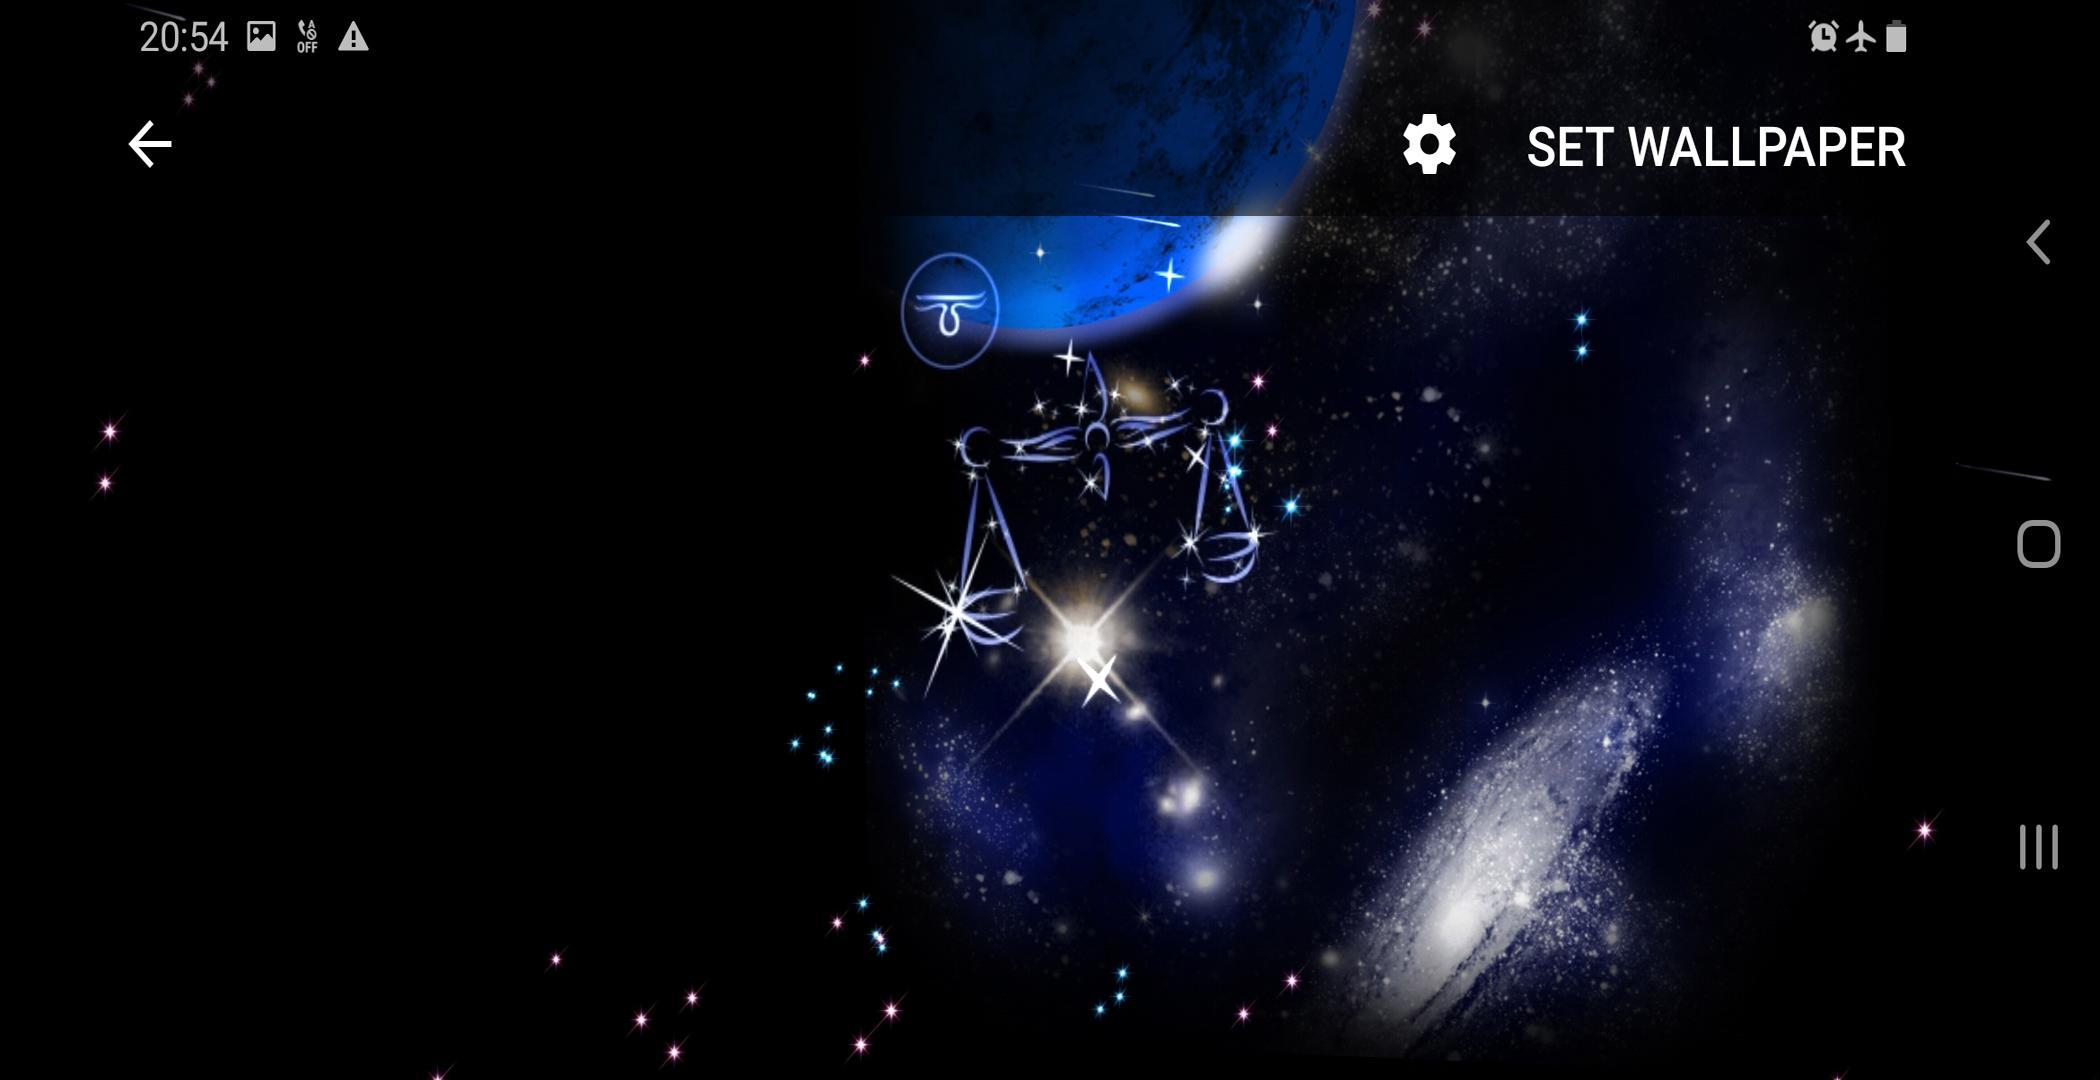 Zodiac Signs Live Wallpaper Hd For Android Apk Download